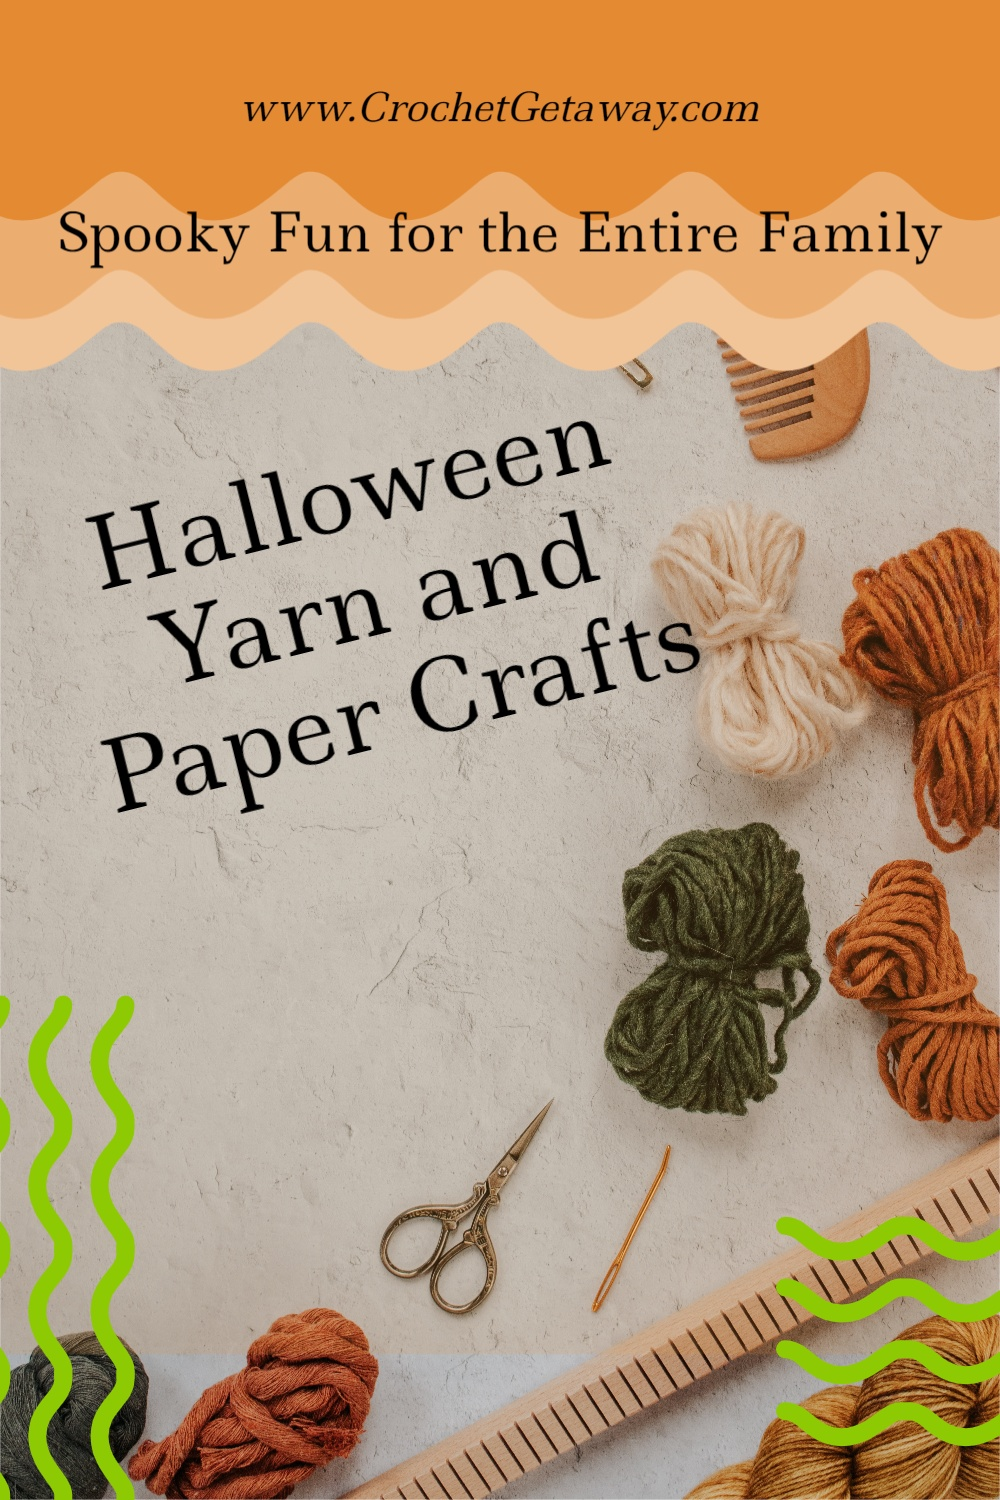 Halloween Crafts with Yarn and Paper